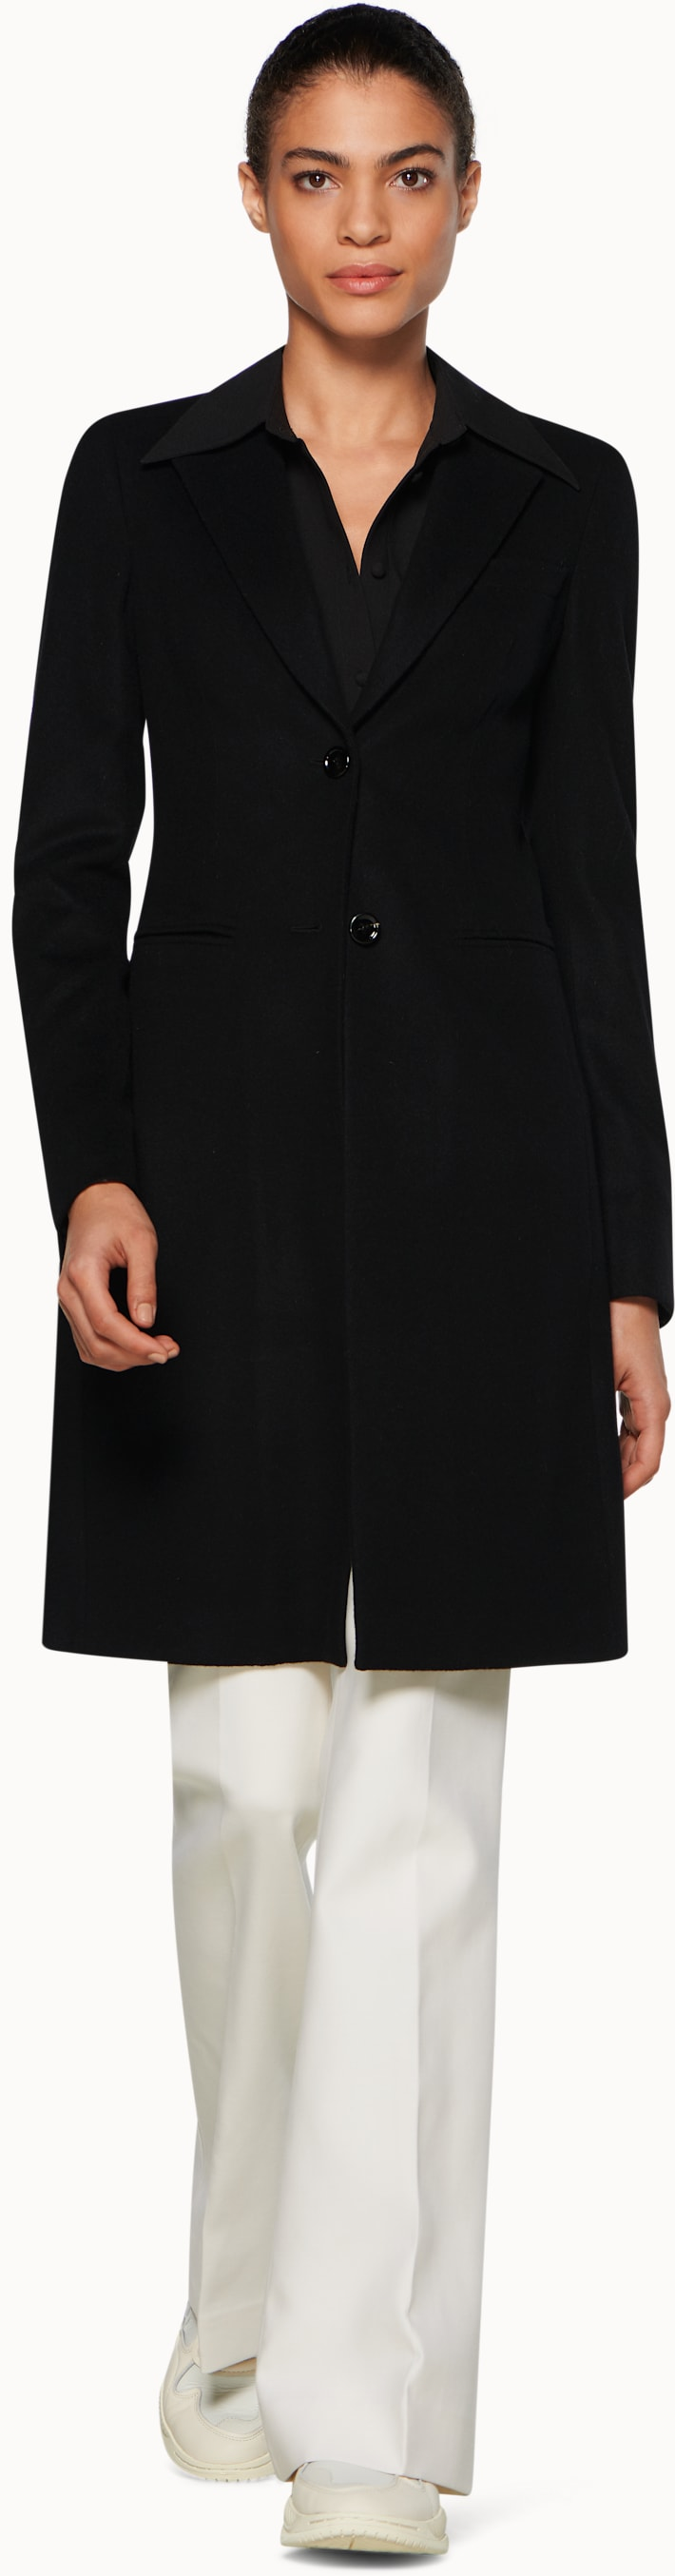 Lauren Black  Overcoat